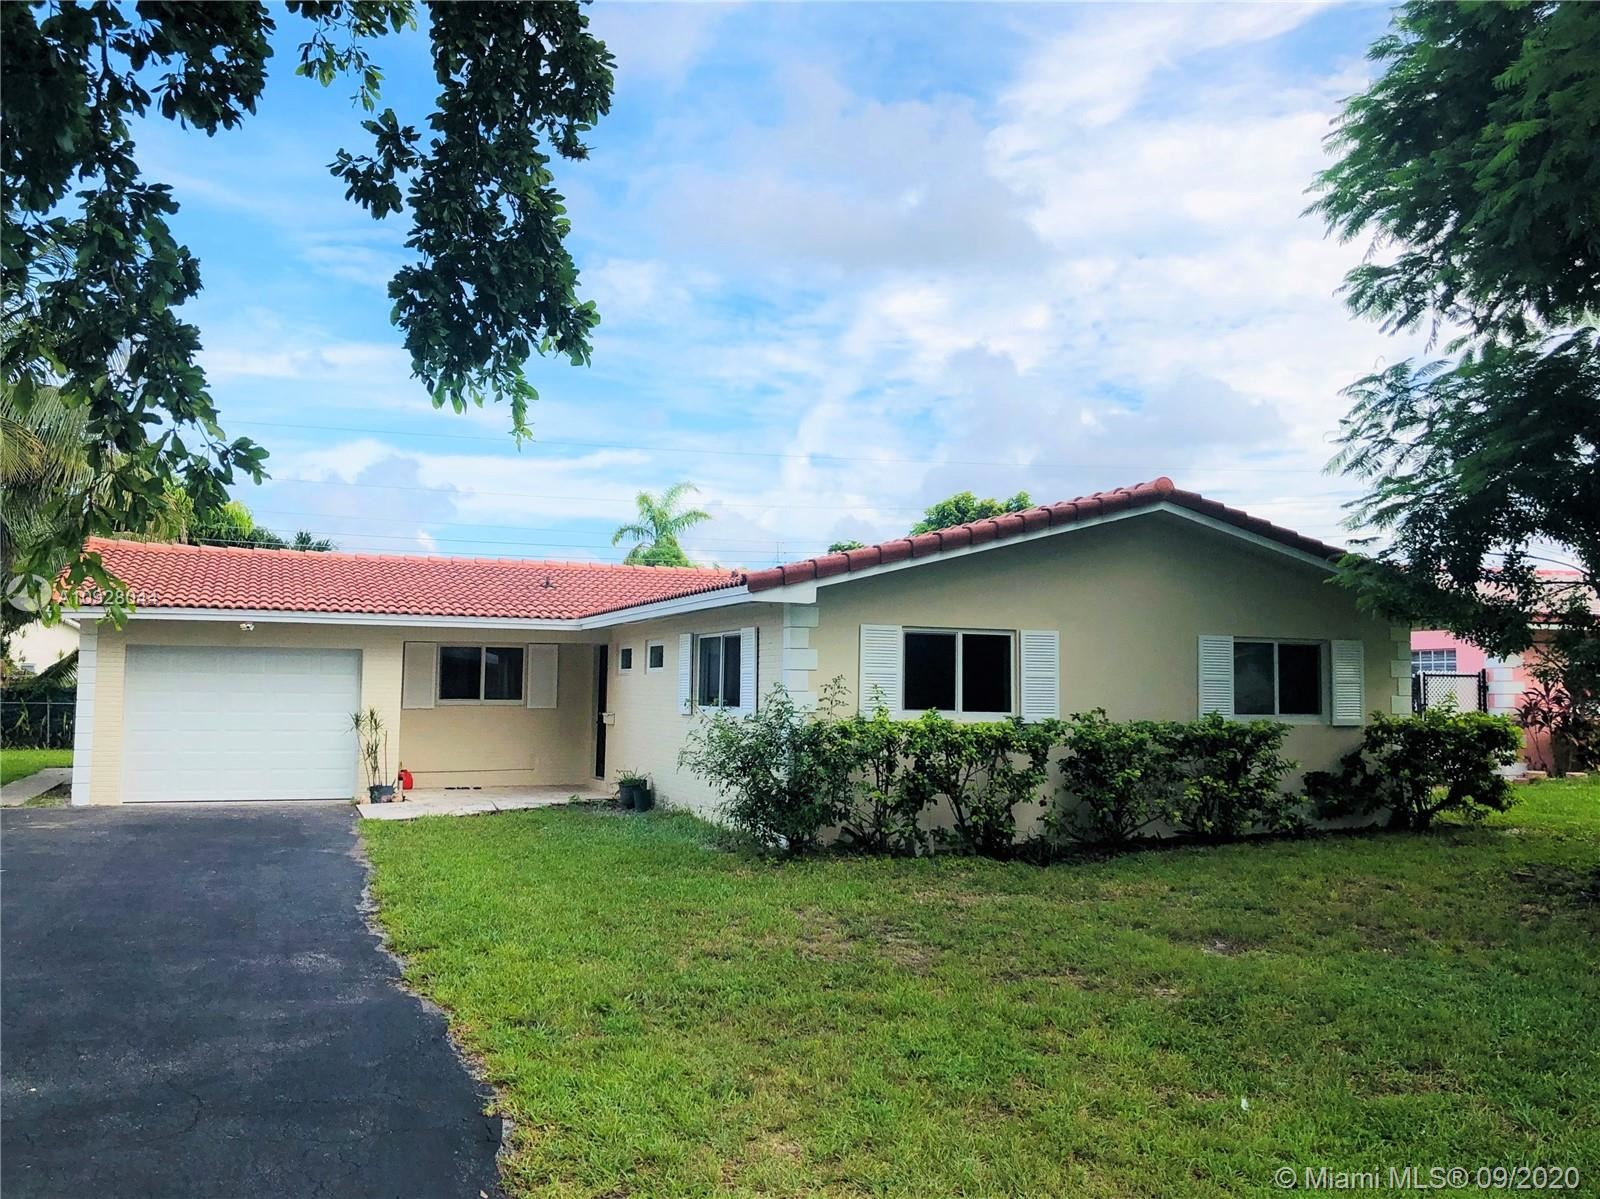 4129 NW 78th Ln, Coral Springs, FL 33065 - #: A10928044